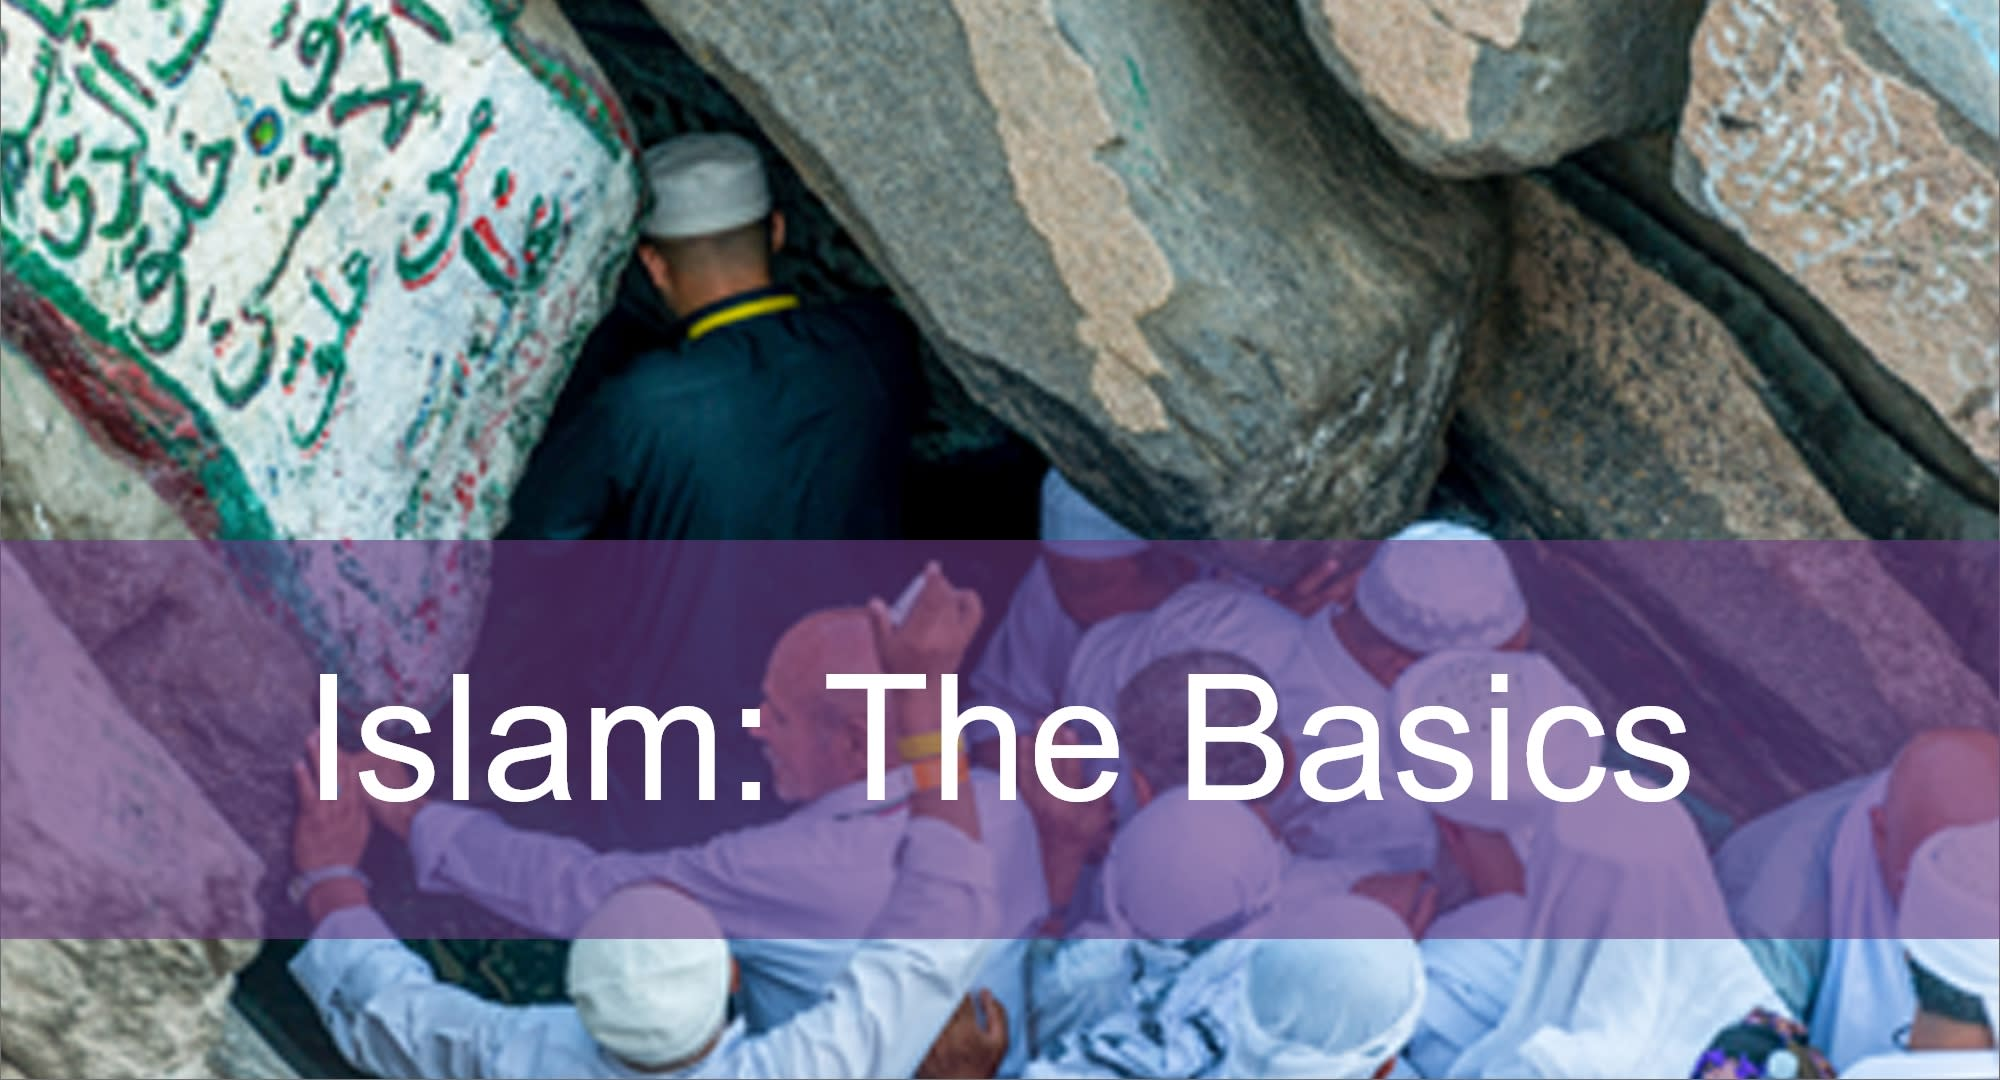 Click here to view articles on Islam: the Basics